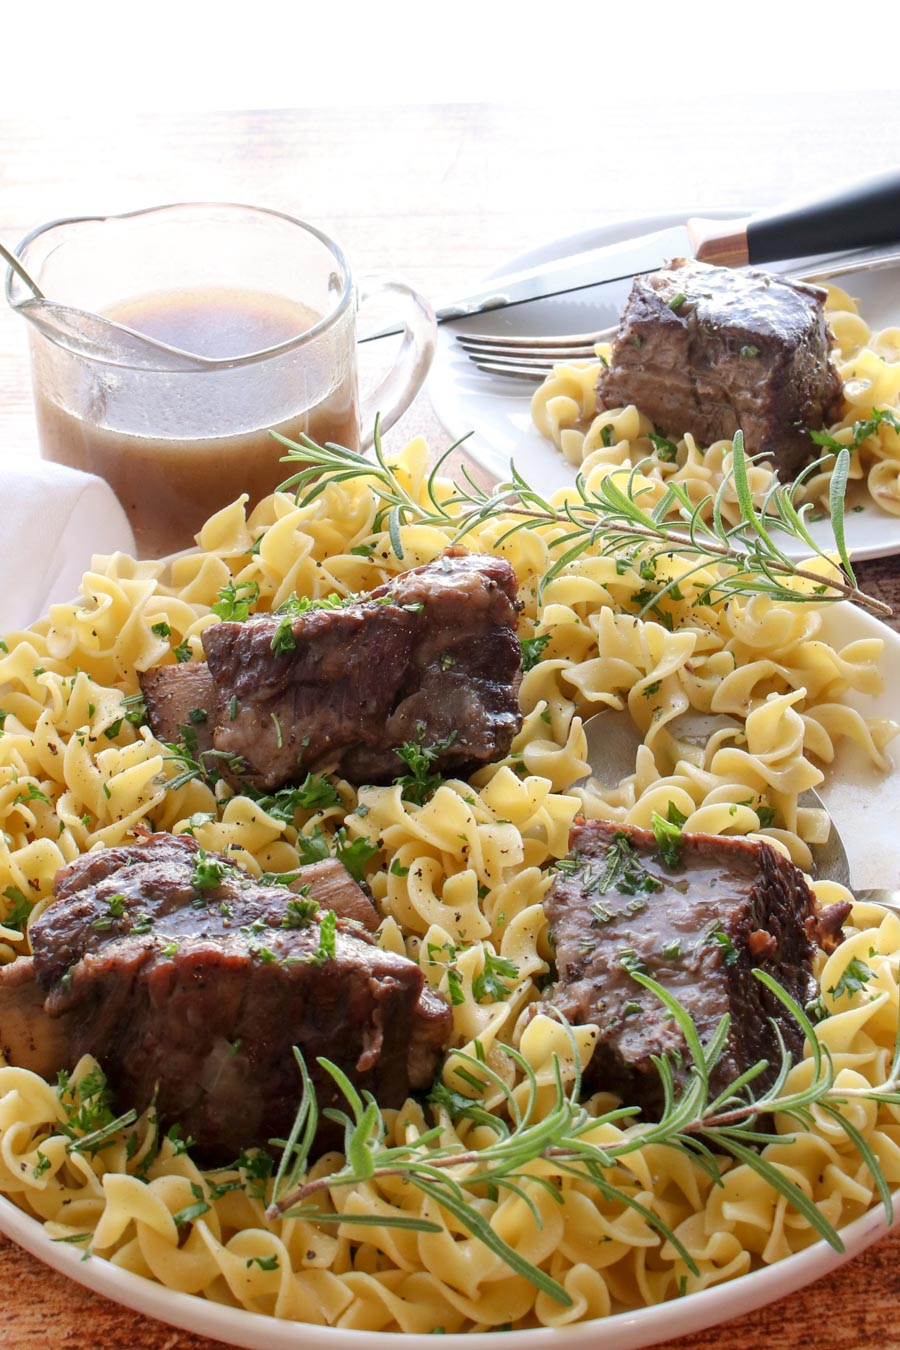 ribs sitting on a plate of noodles